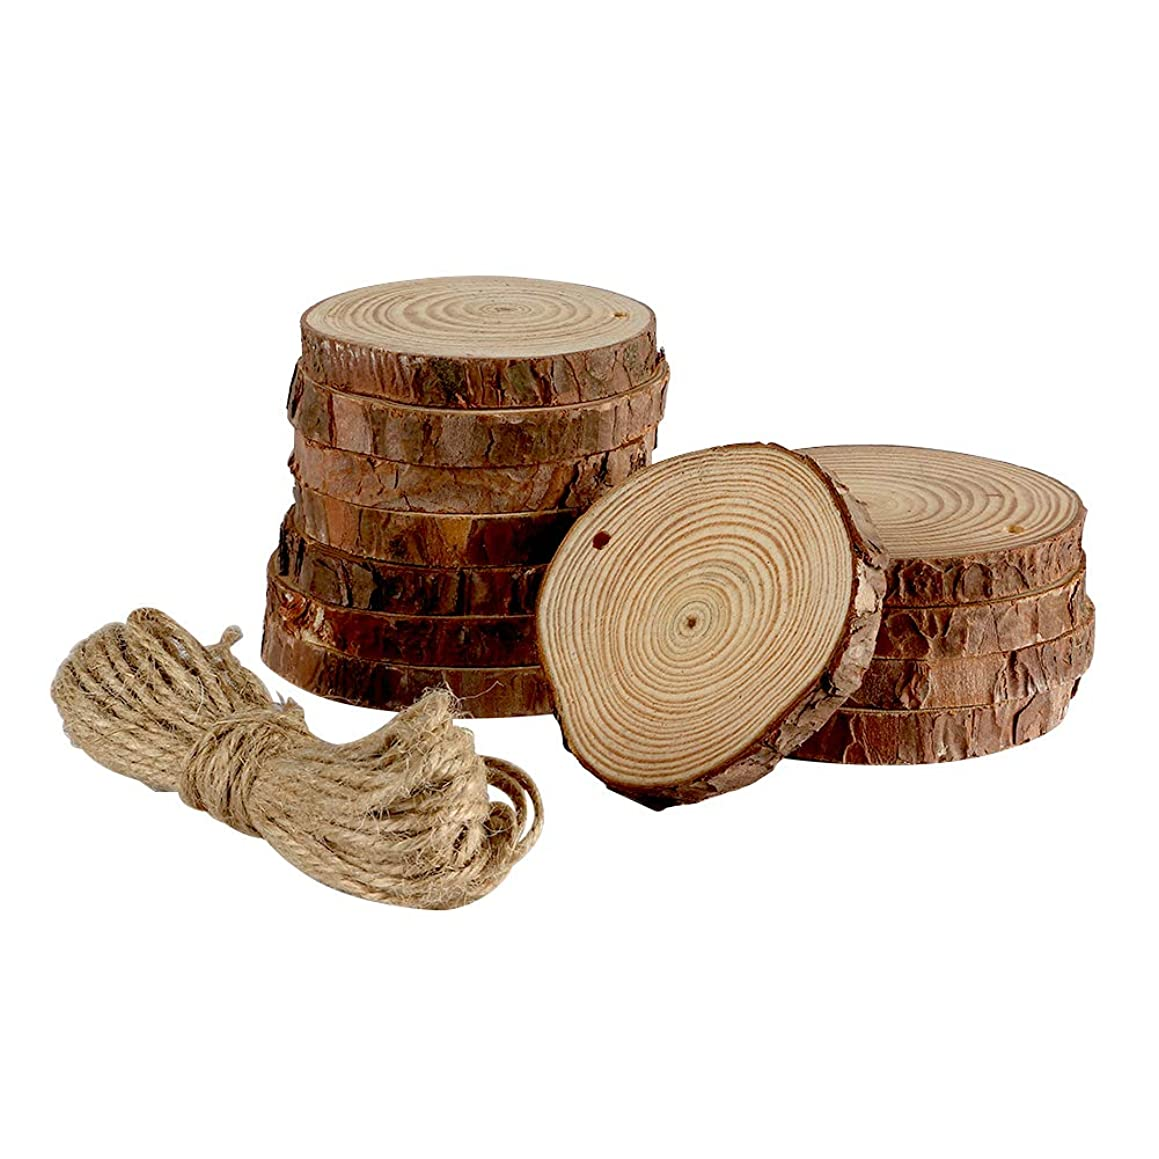 Joy-Leo 12 Pack 3-4 Inch Natural Unfinished Wood Slices[Fumigated/0.4 Inch Thick] with Hole and Jute Twine for Wood Burning & Crafts Project, Wood Cork Coasters for Drinks & Wine Glasses & Coffee Mug